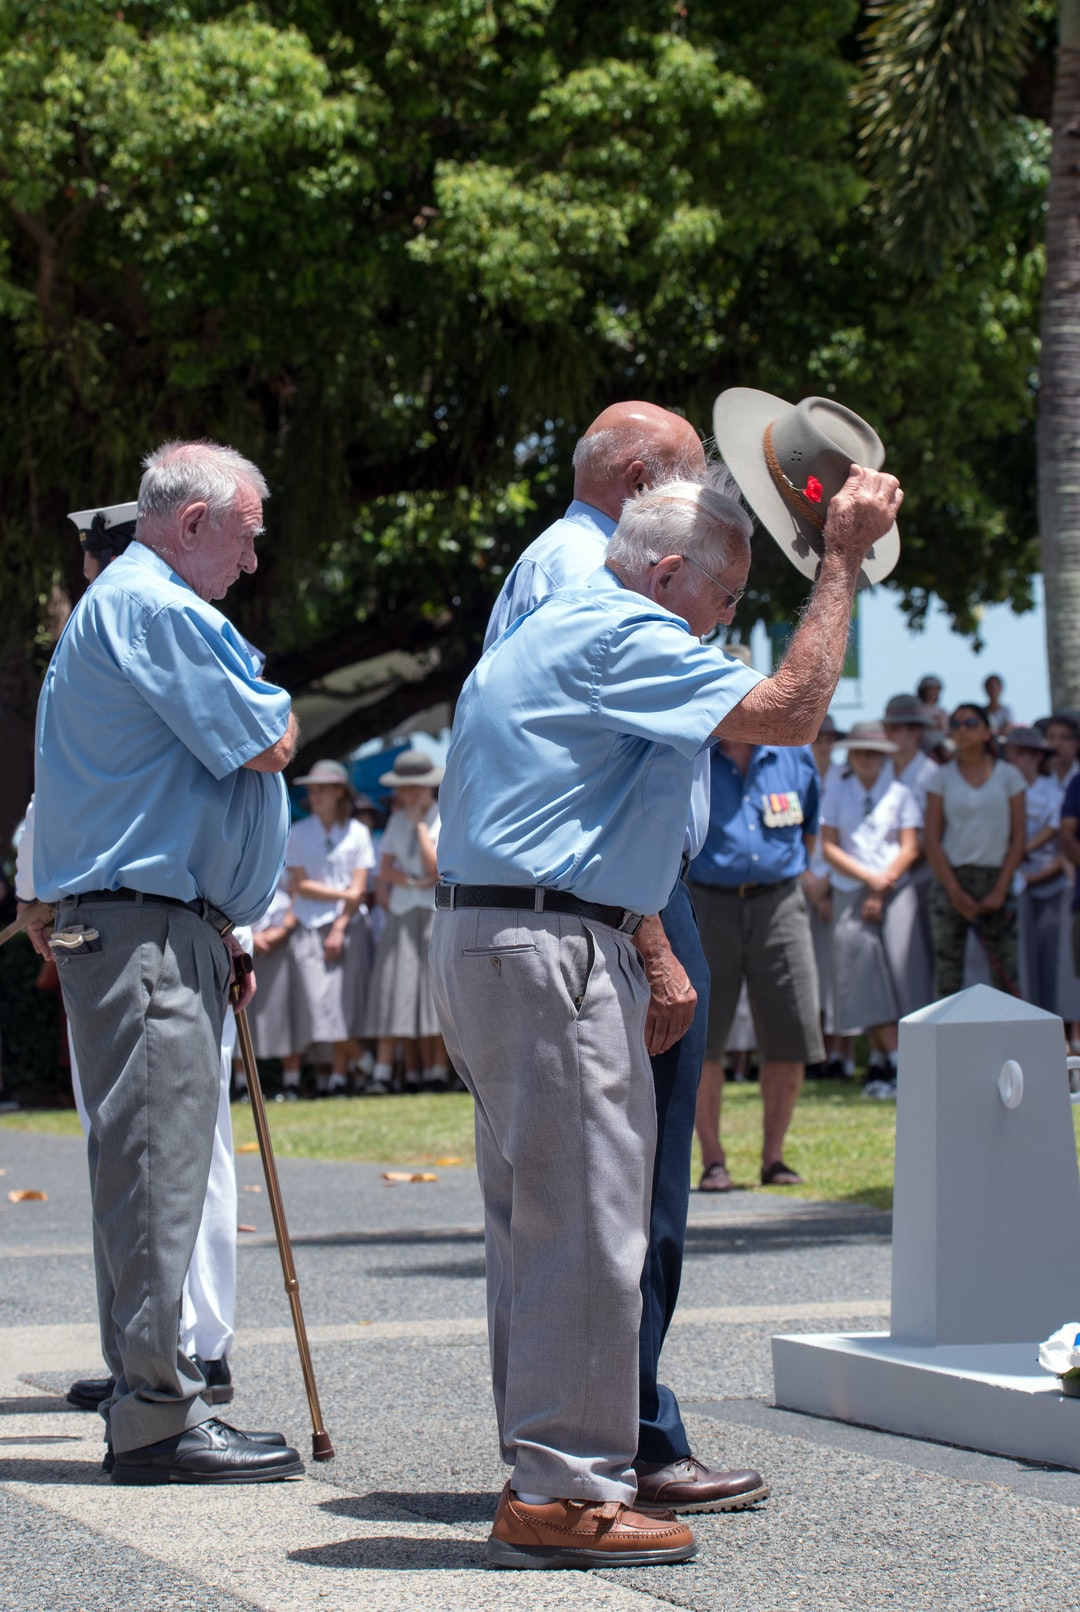 """Paying their respects"". Veterans pay their respects to those who have fought for freedom alongside them and before them. Remembrance Day, Cairns, Australia."